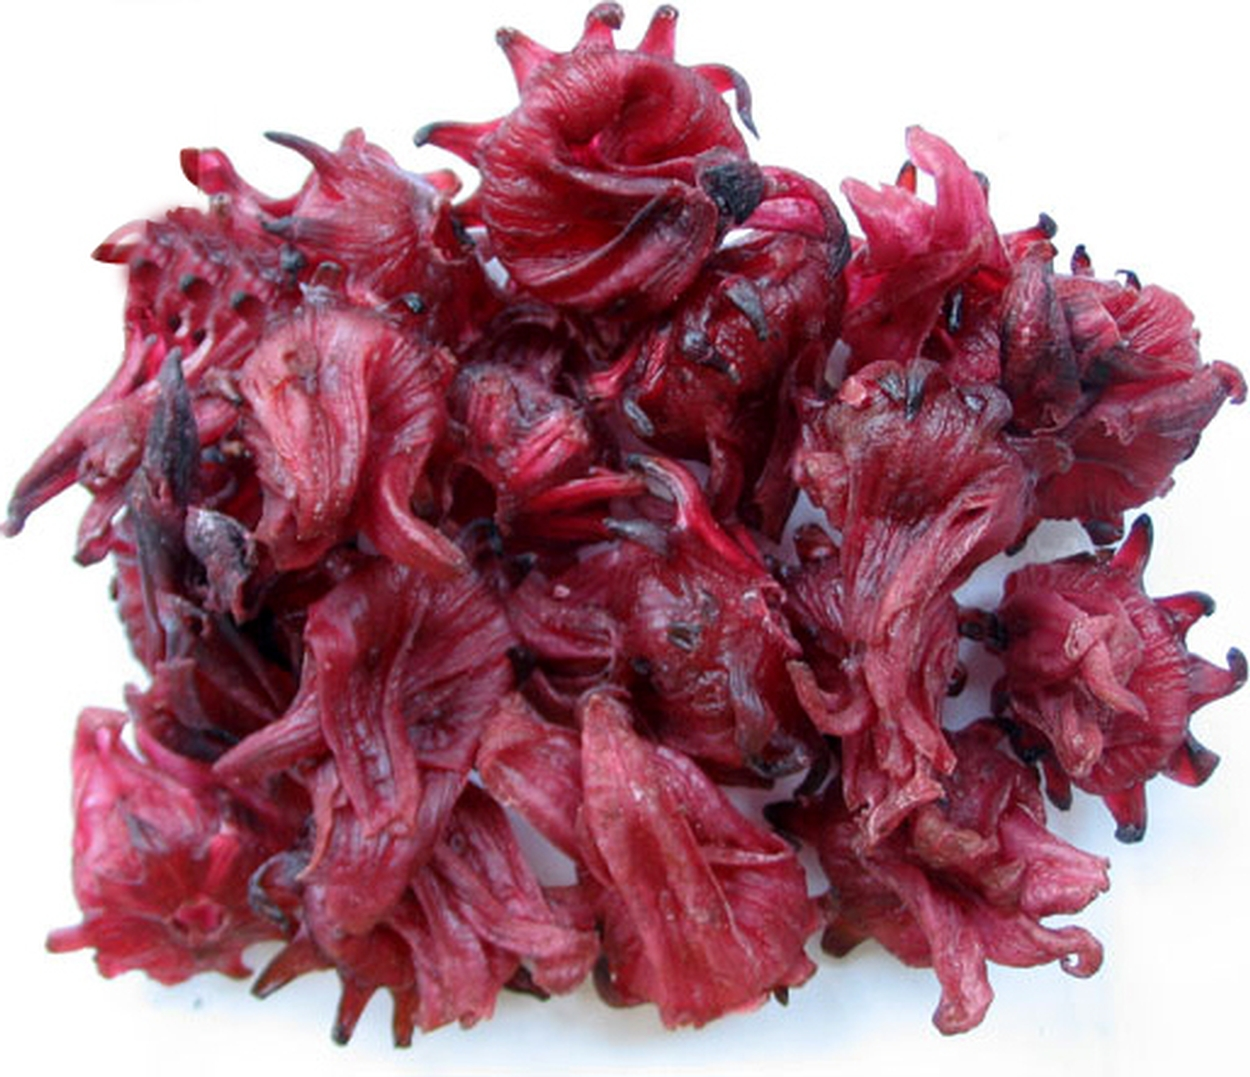 Dried hibiscus flower oh nuts oh nuts dried hibiscus flower izmirmasajfo Images